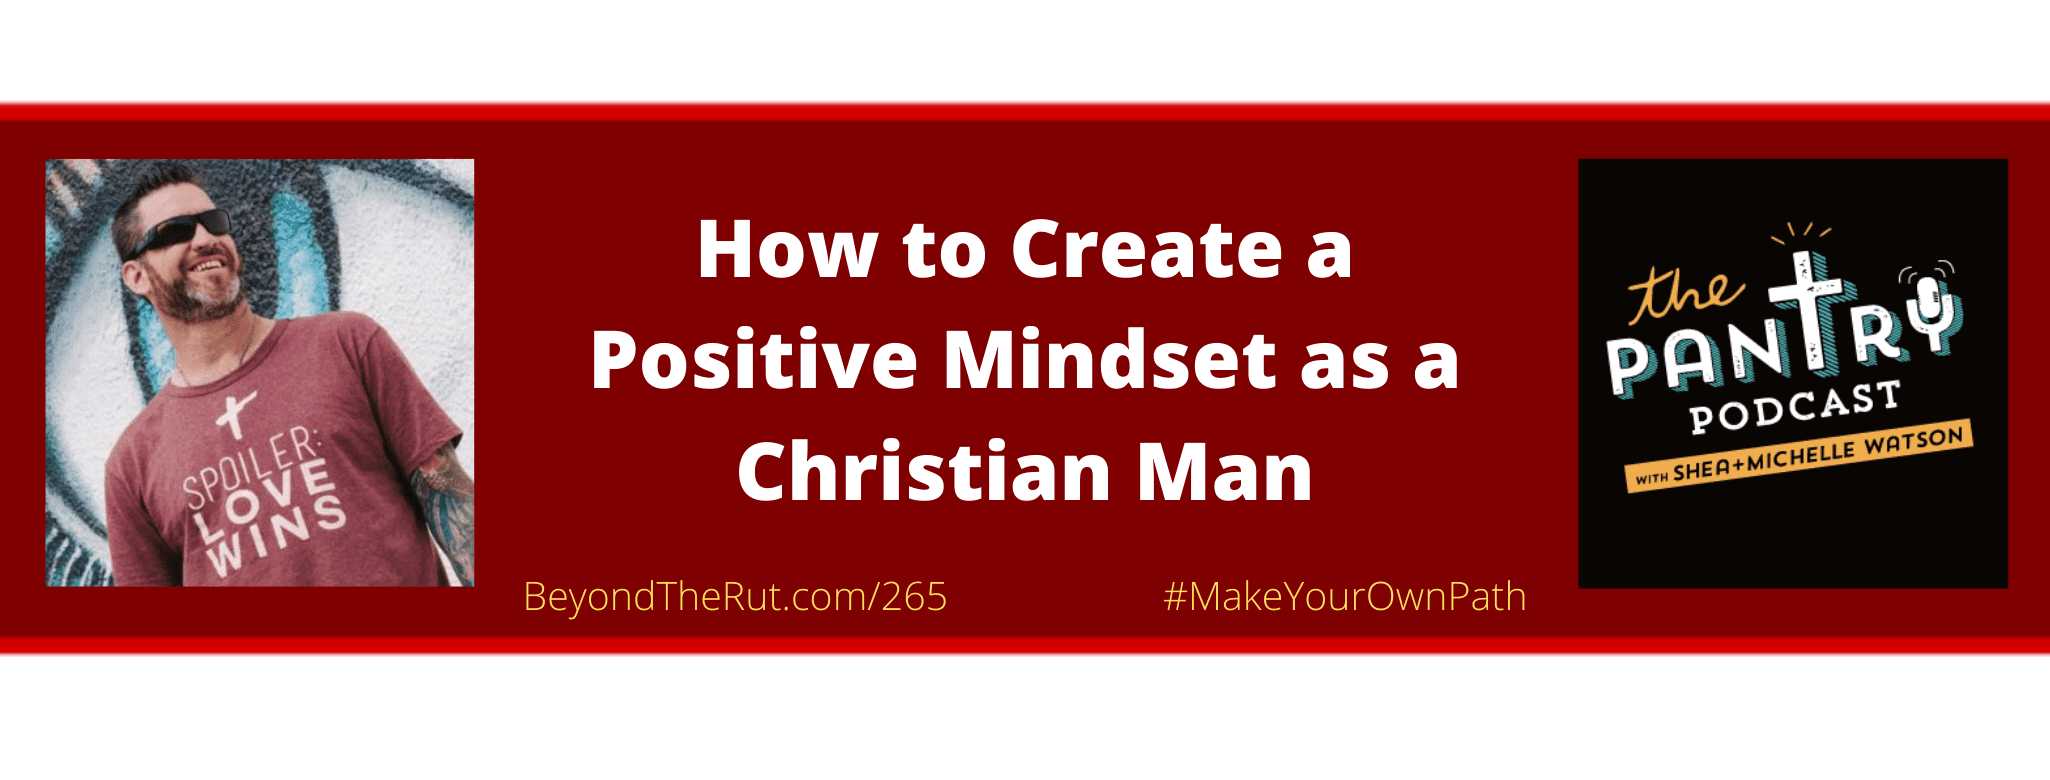 Shae Watson on How to Create a Positive Mindset as a Christian Man